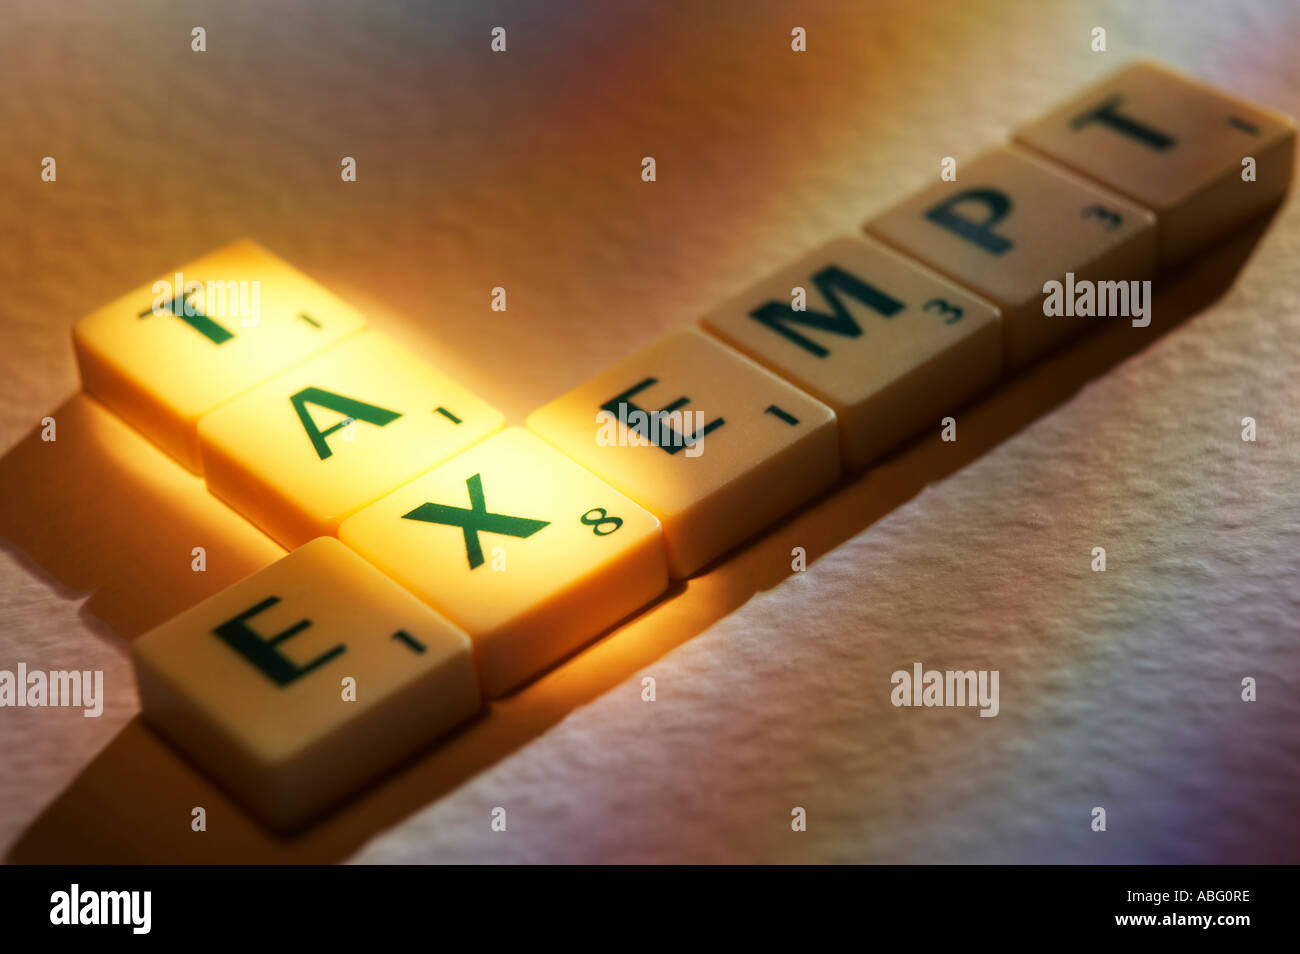 SCRABBLE BOARD GAME LETTERS SPELLING THE WORDS TAX EXEMPT - Stock Image